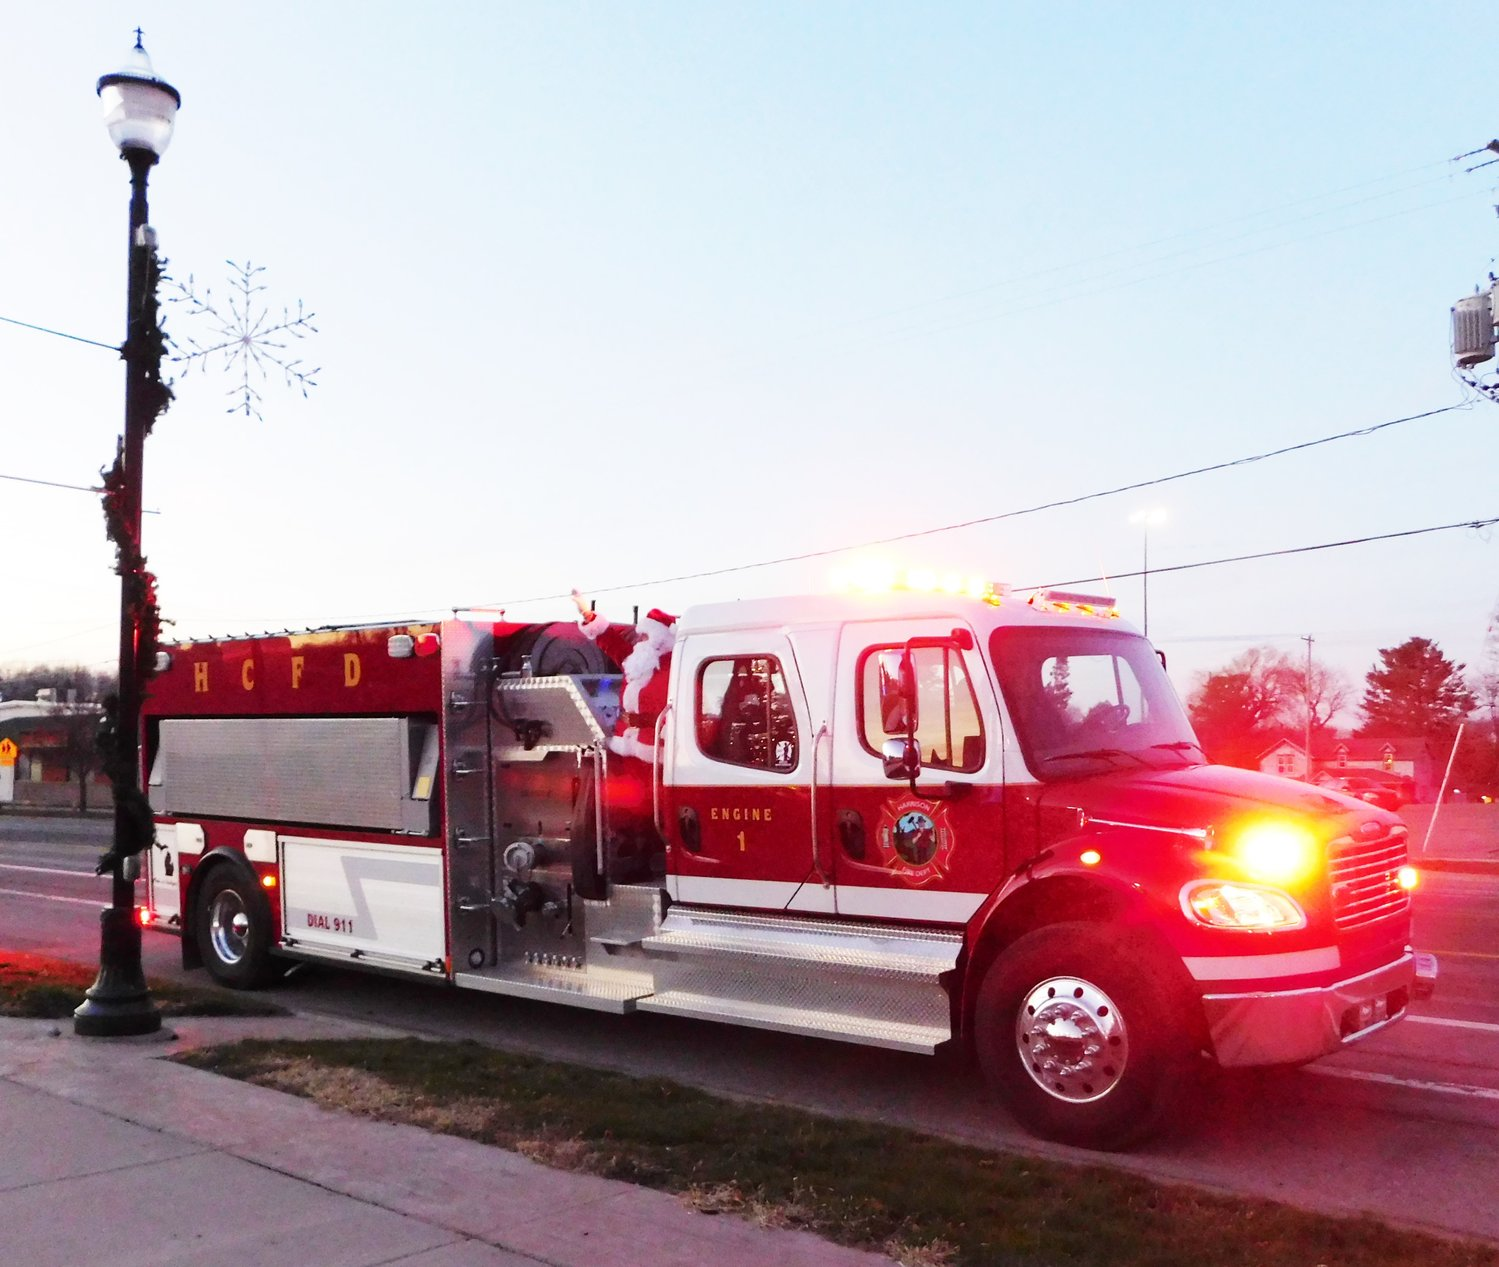 Arriving at the Harrison Town Square in style aboard a fire engine, Santa waves to all the children and adults gathered to ring in the holiday season.